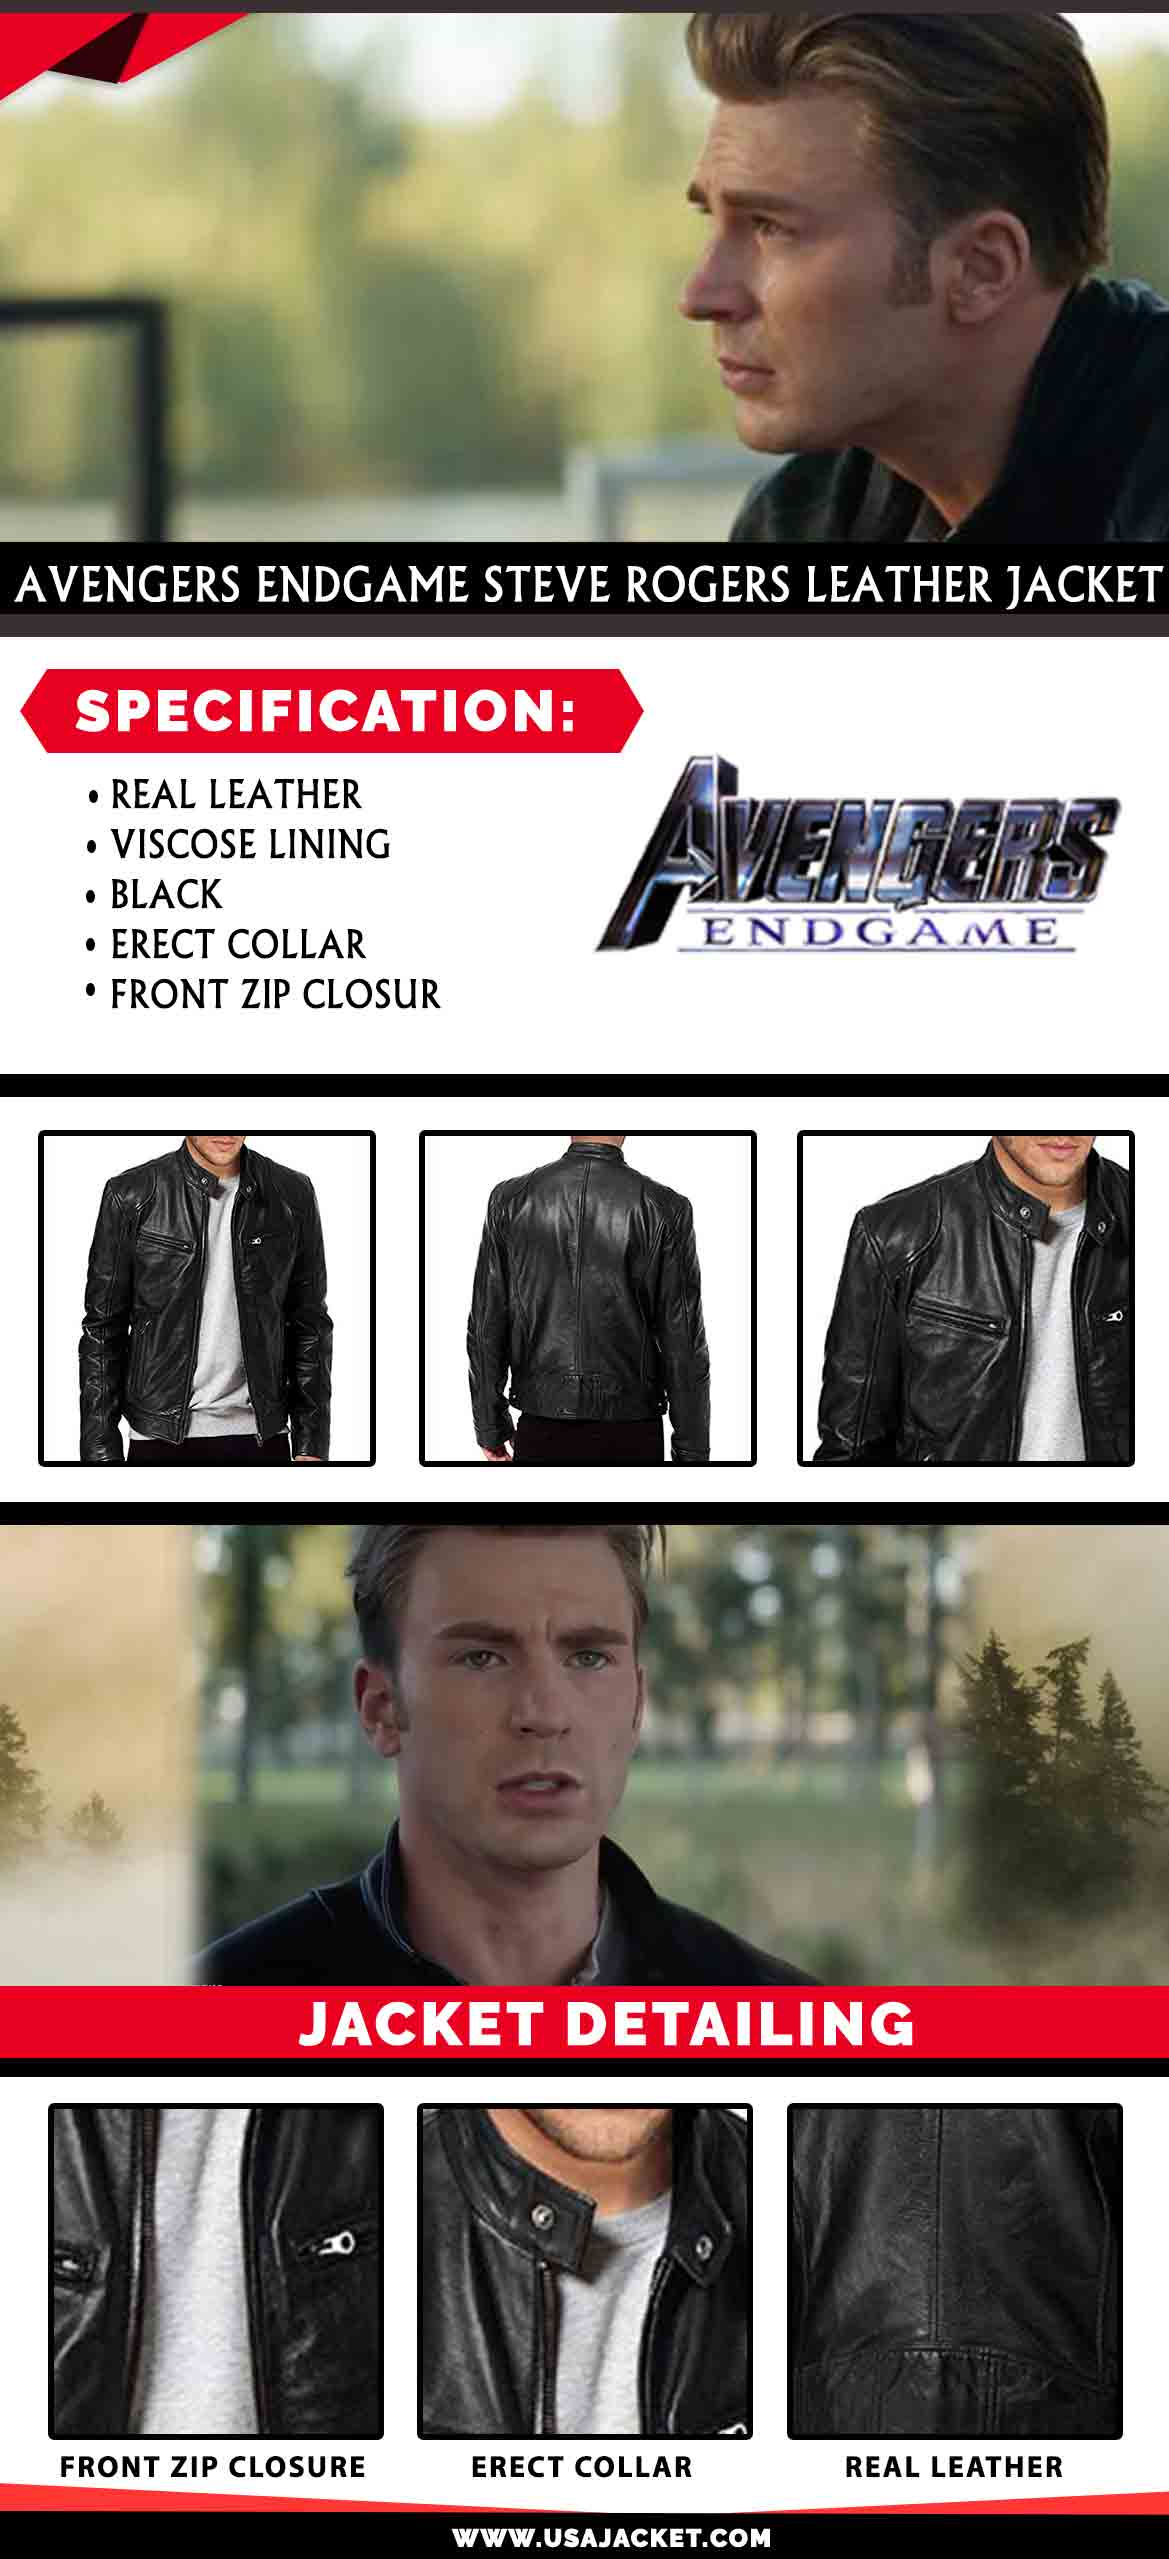 Avengers Endgame Steve Rogers Leather Jacket Infography